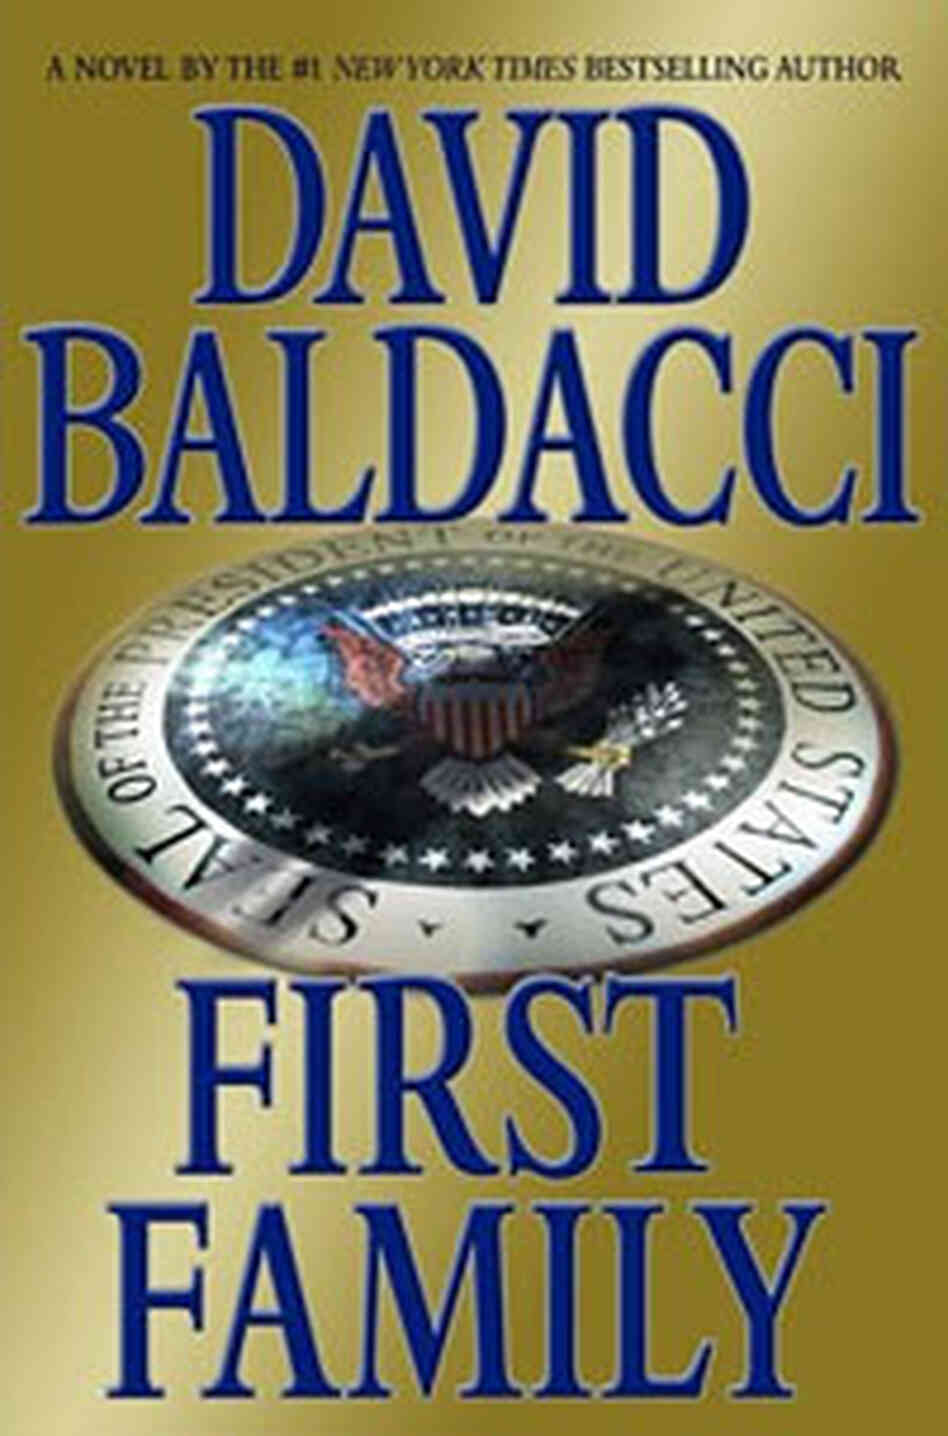 'First Family' cover